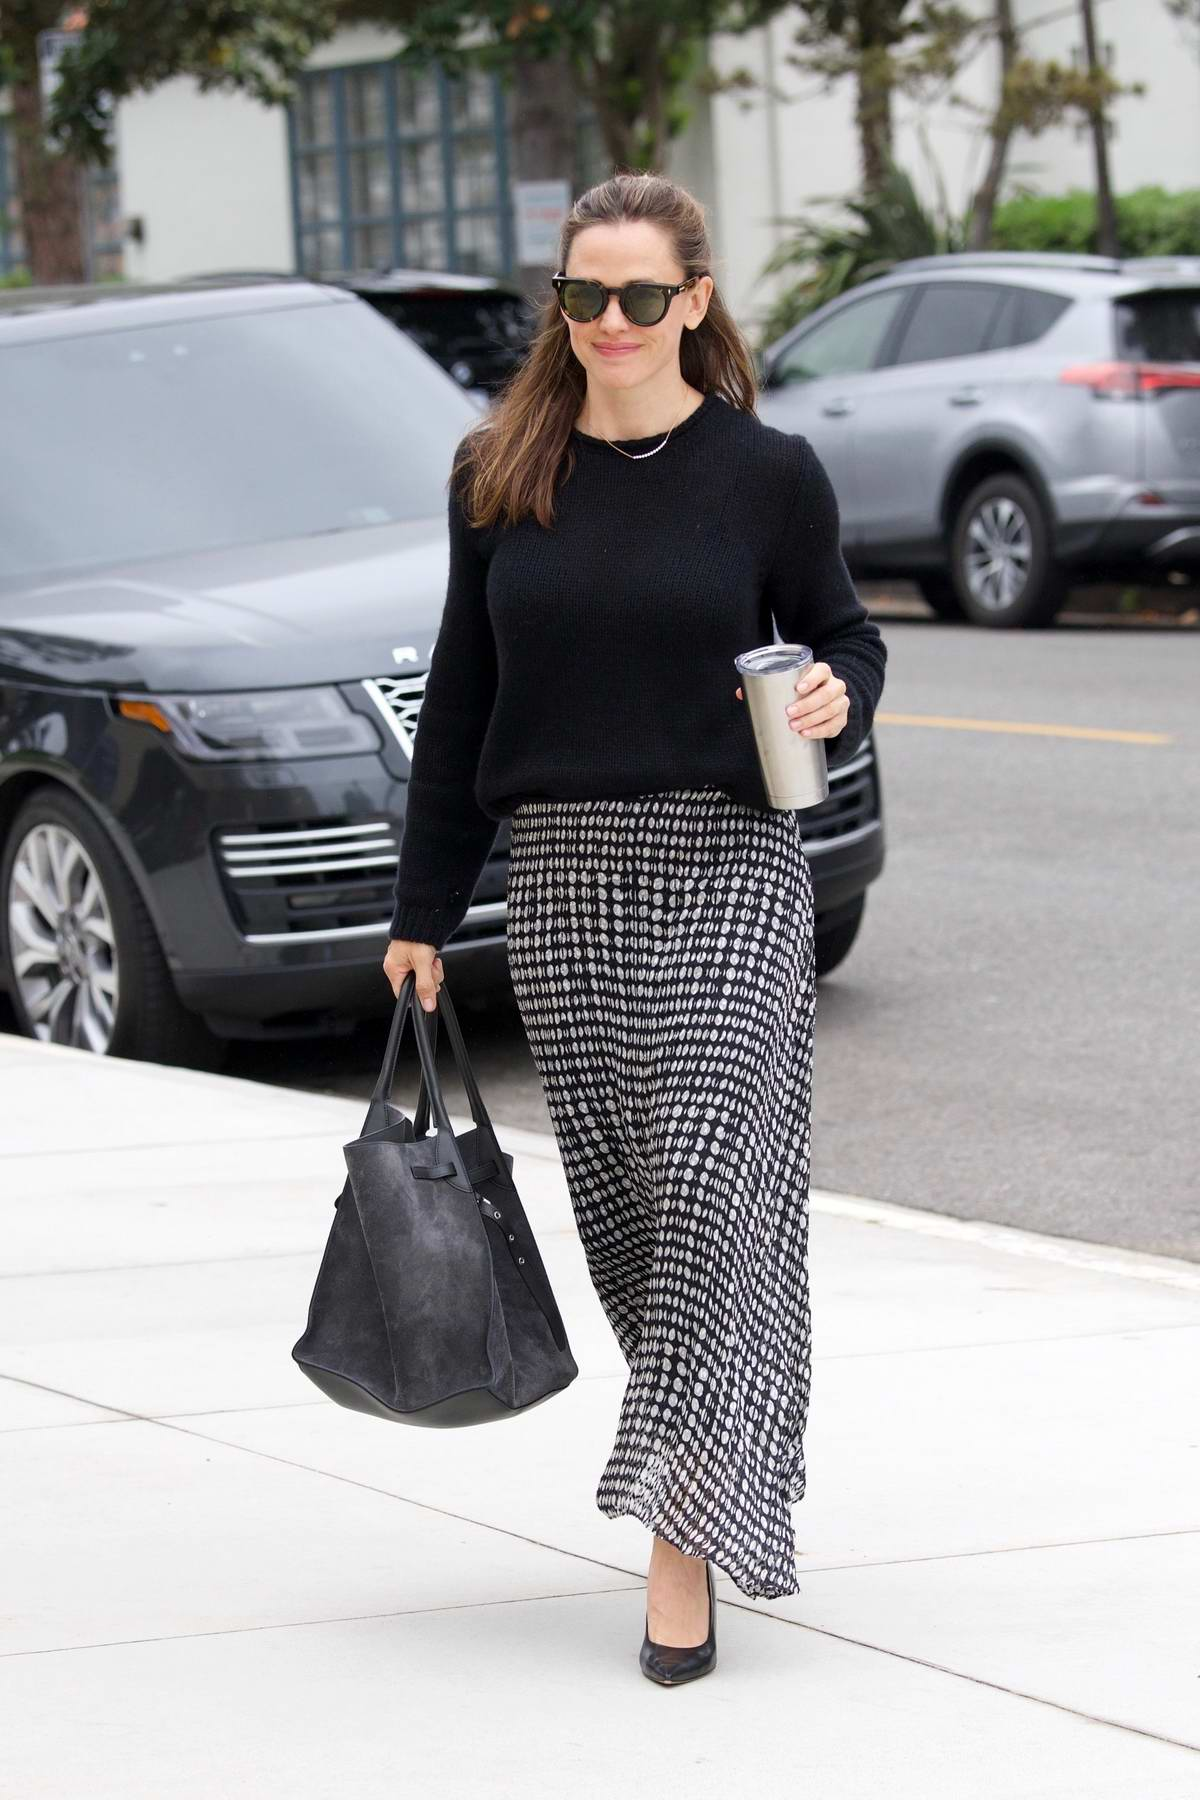 Jennifer Garner looks lovely in a monochrome ensemble as she arrives for the Sunday church service in Pacific Palisades, California